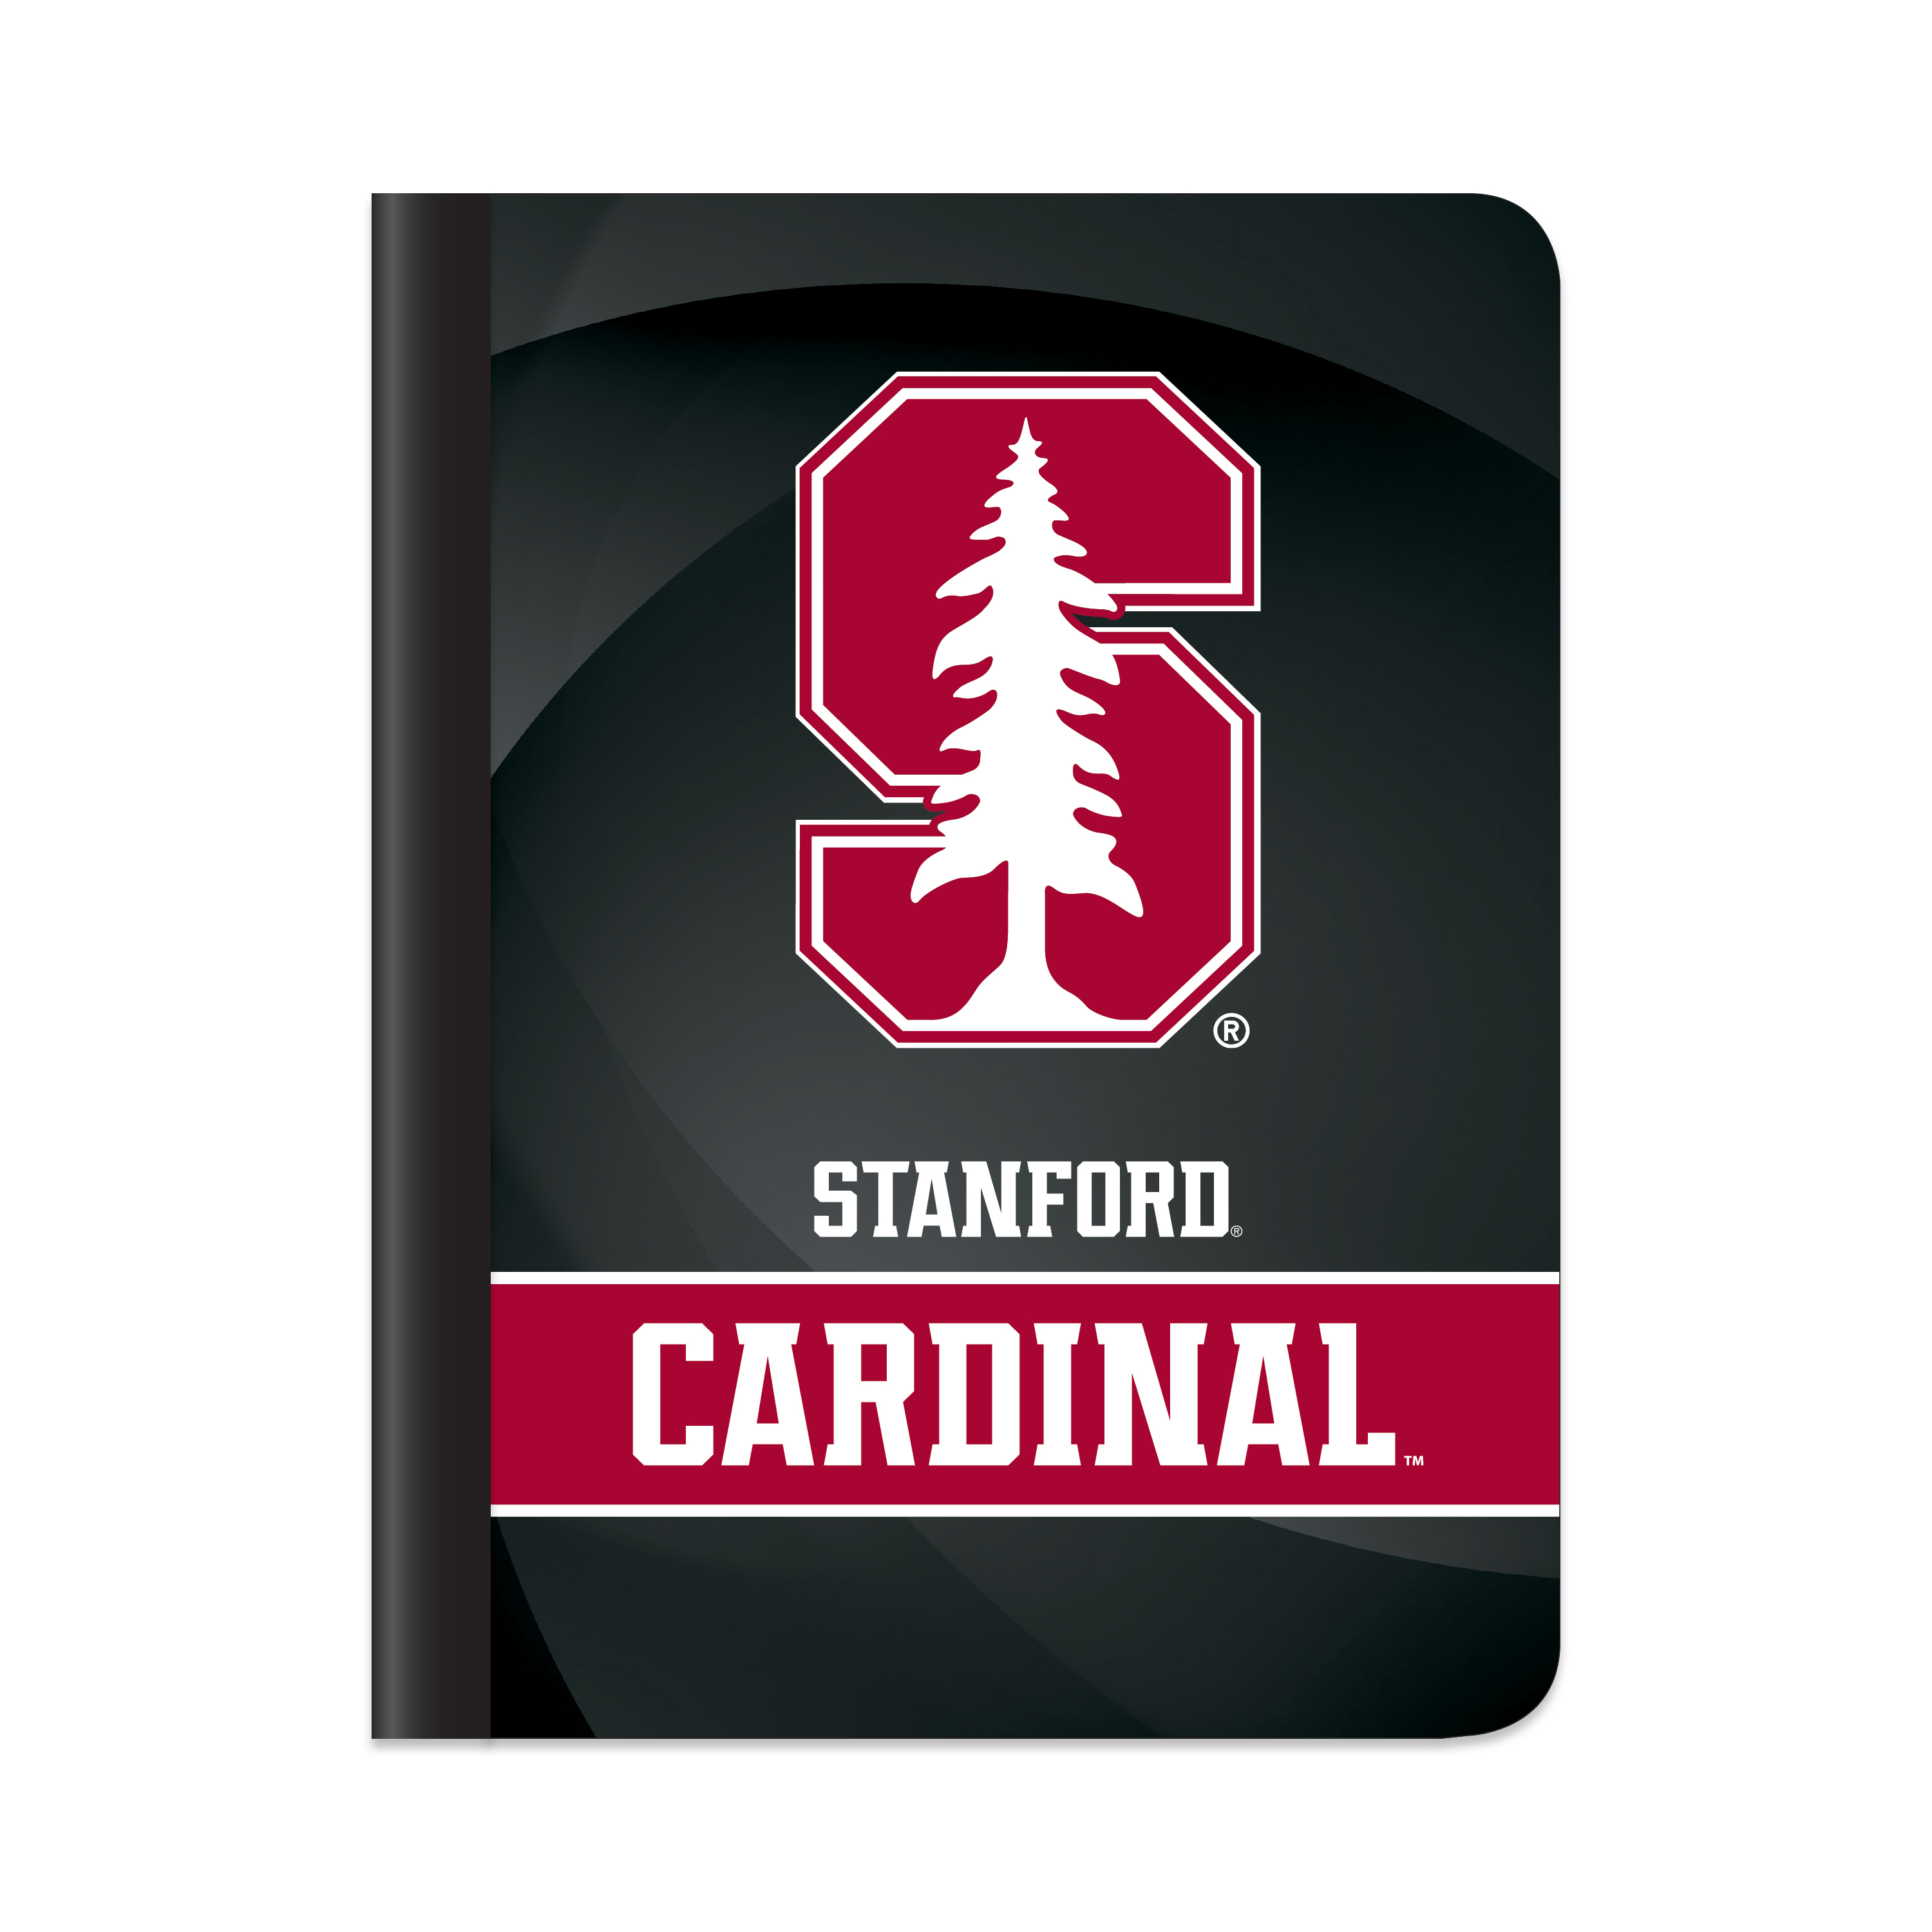 "NCAA Stanford Cardinals Composition Book, 7.5"" by 9.75"", 100 Sheets, College Rule"